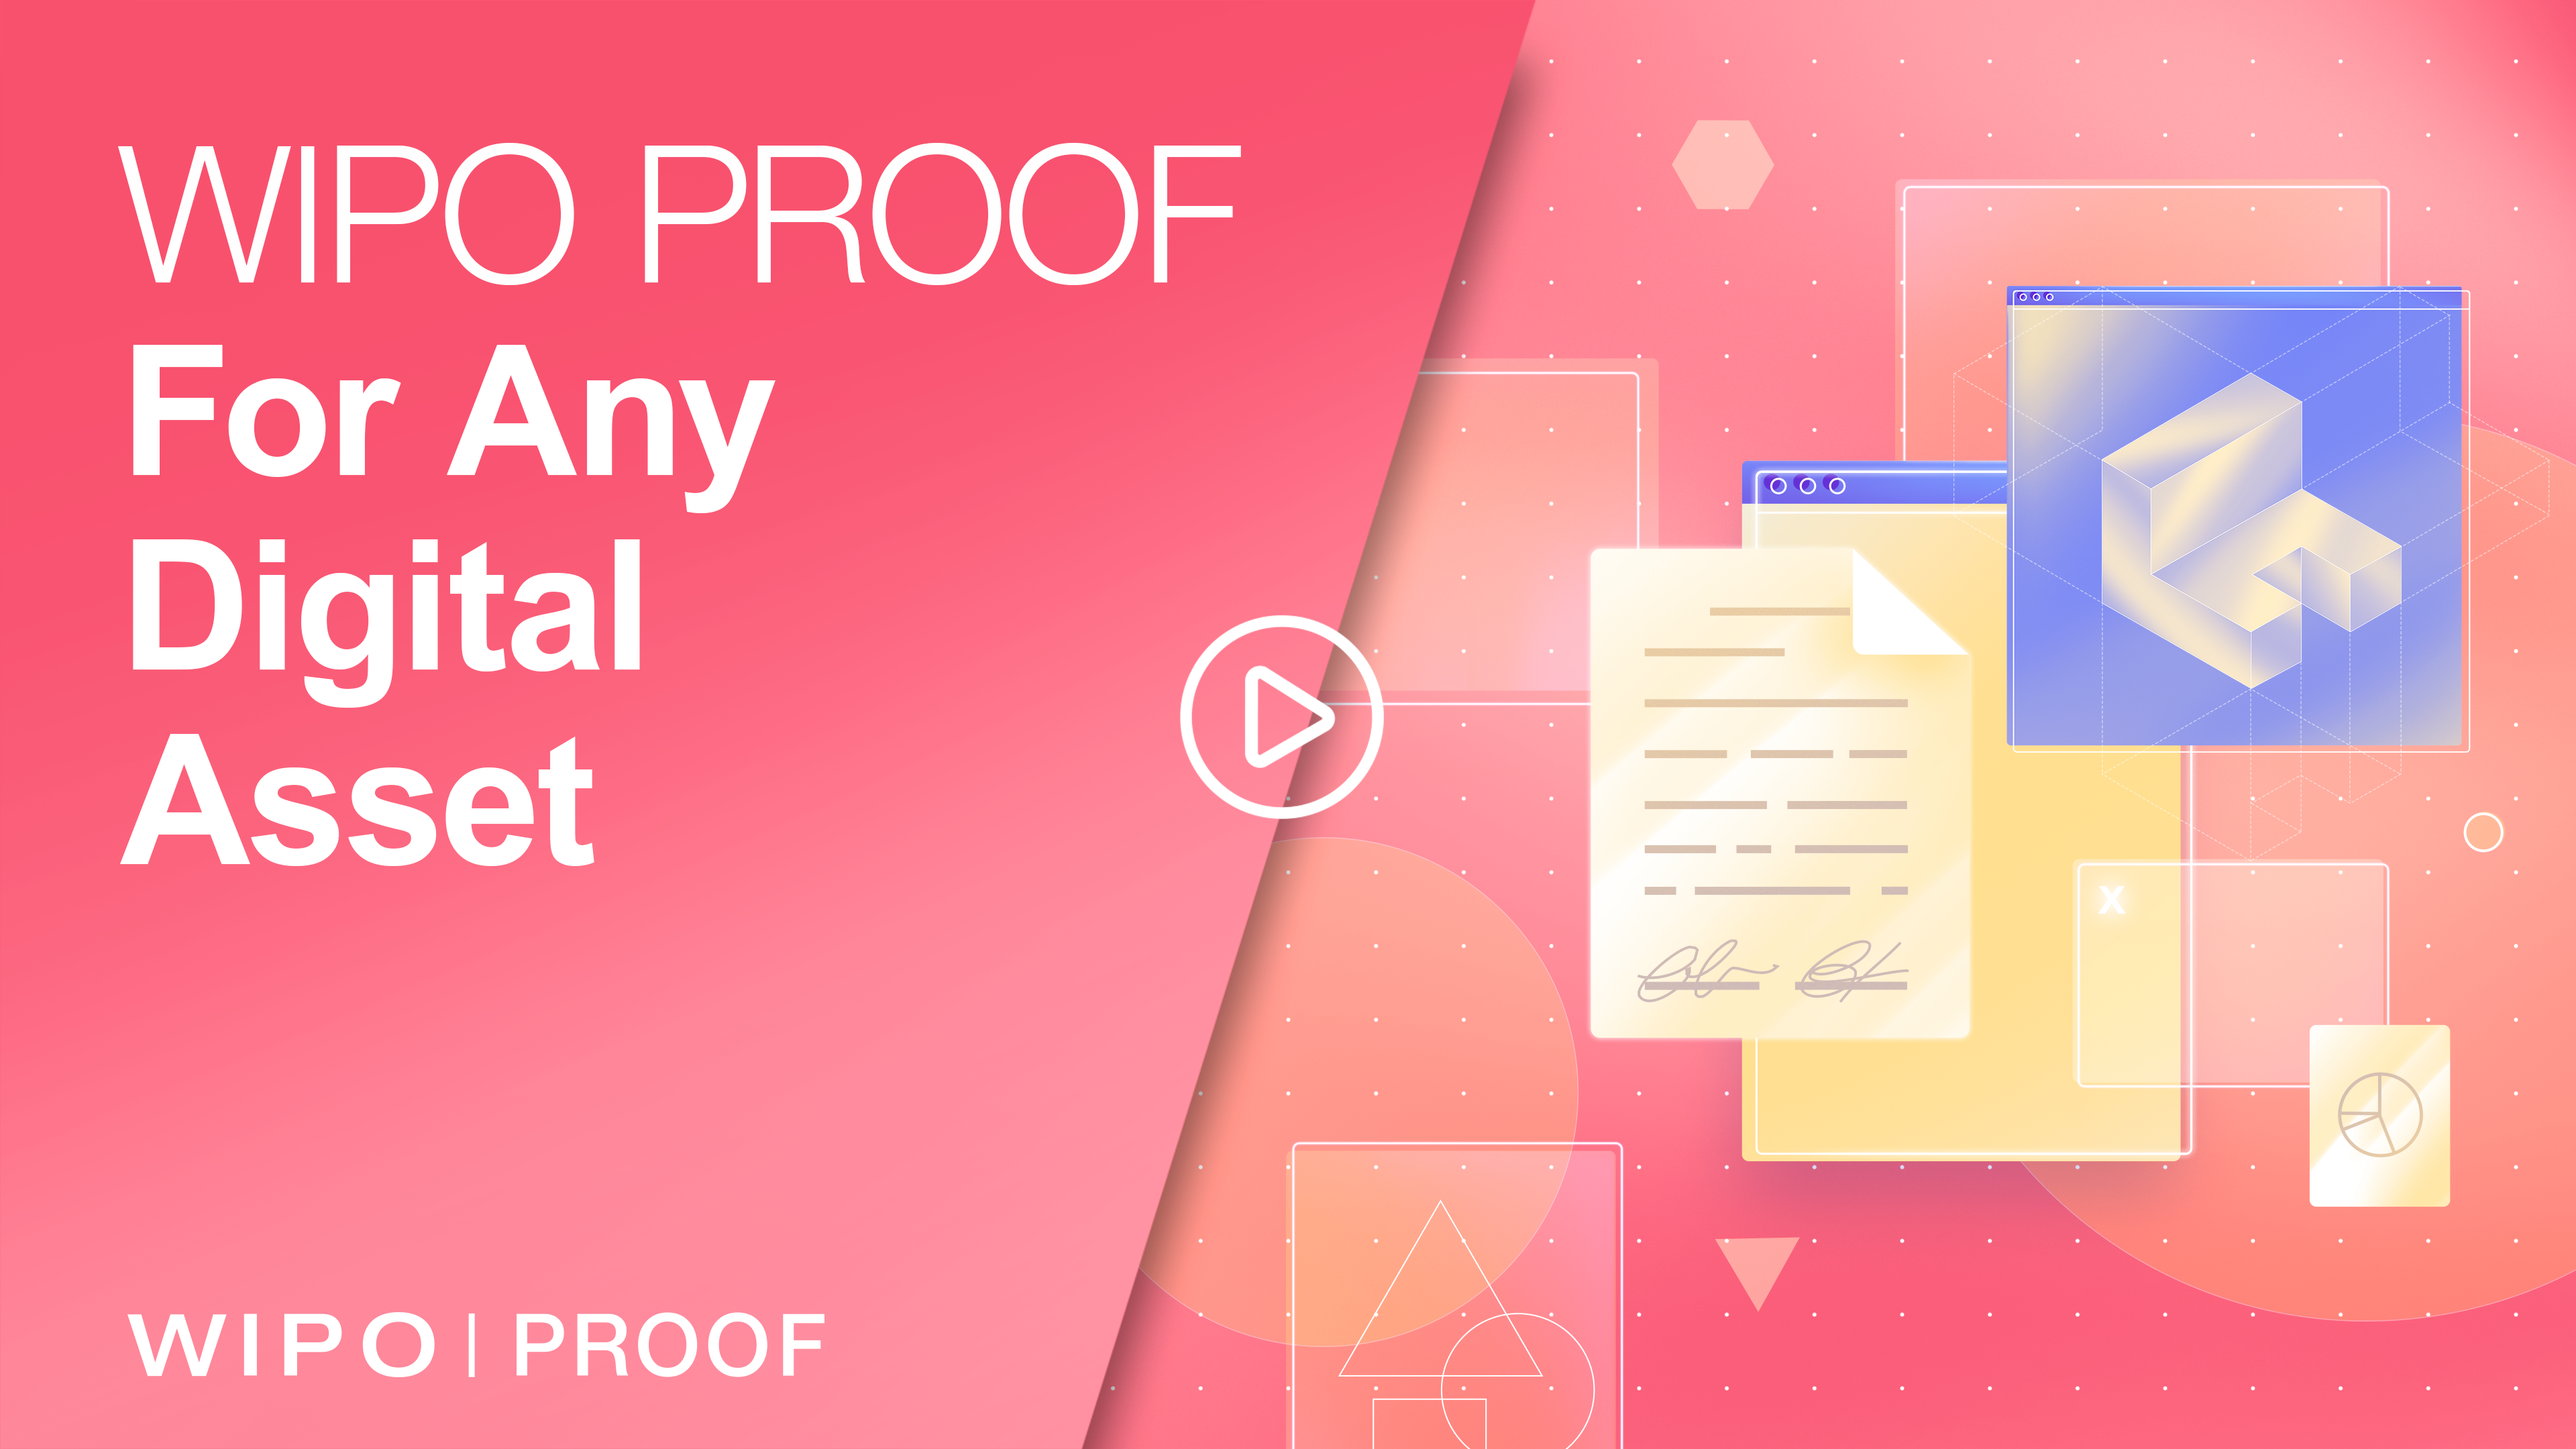 video of how WIPO PROOF can be used for any digital file